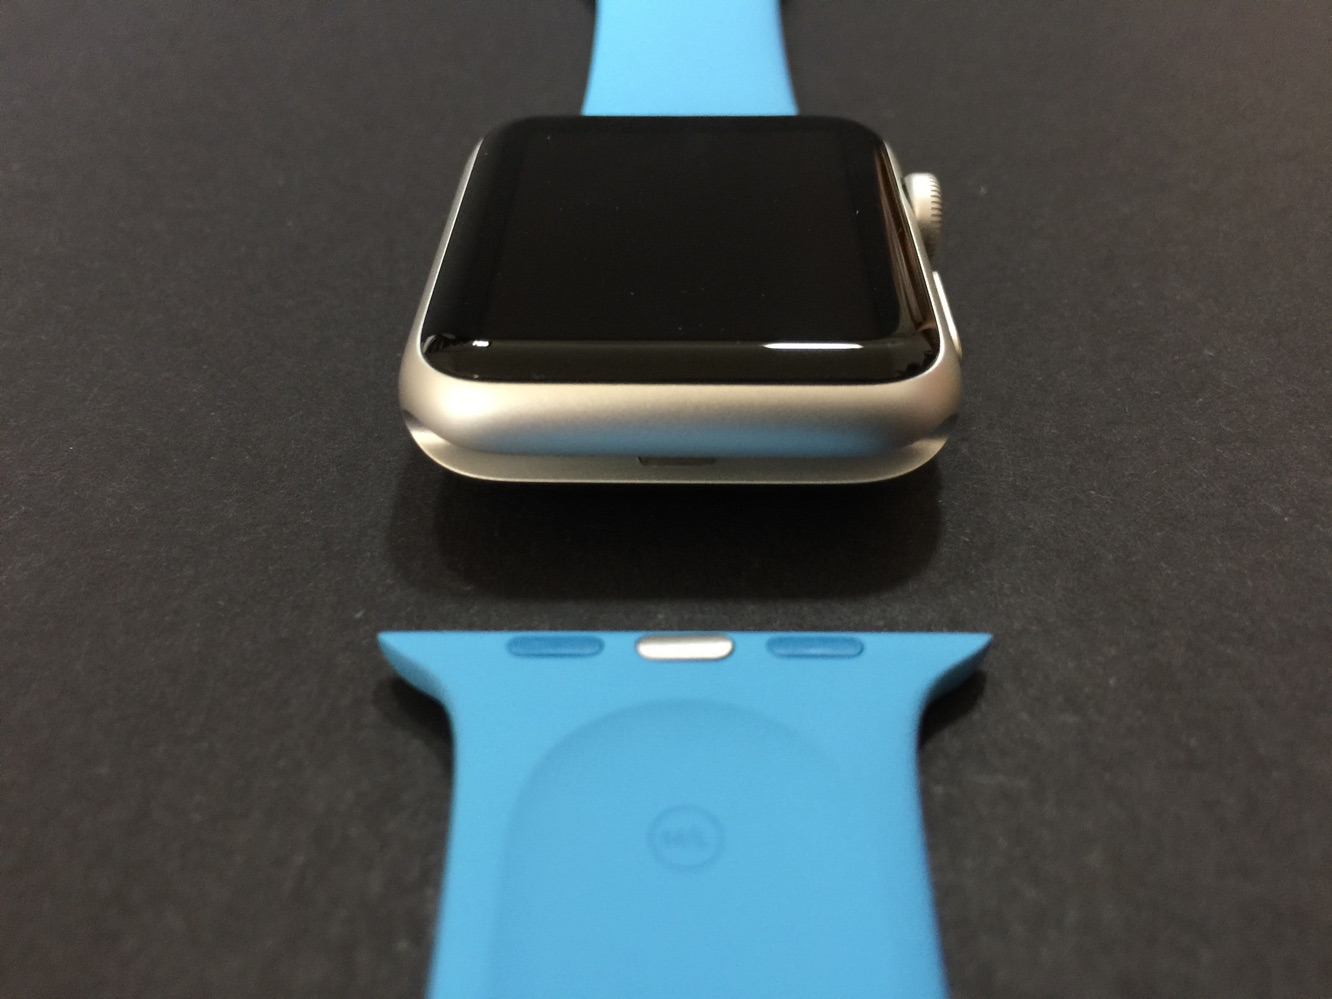 Rumor: Apple working on health tracking 'smart bands' for Apple Watch 1